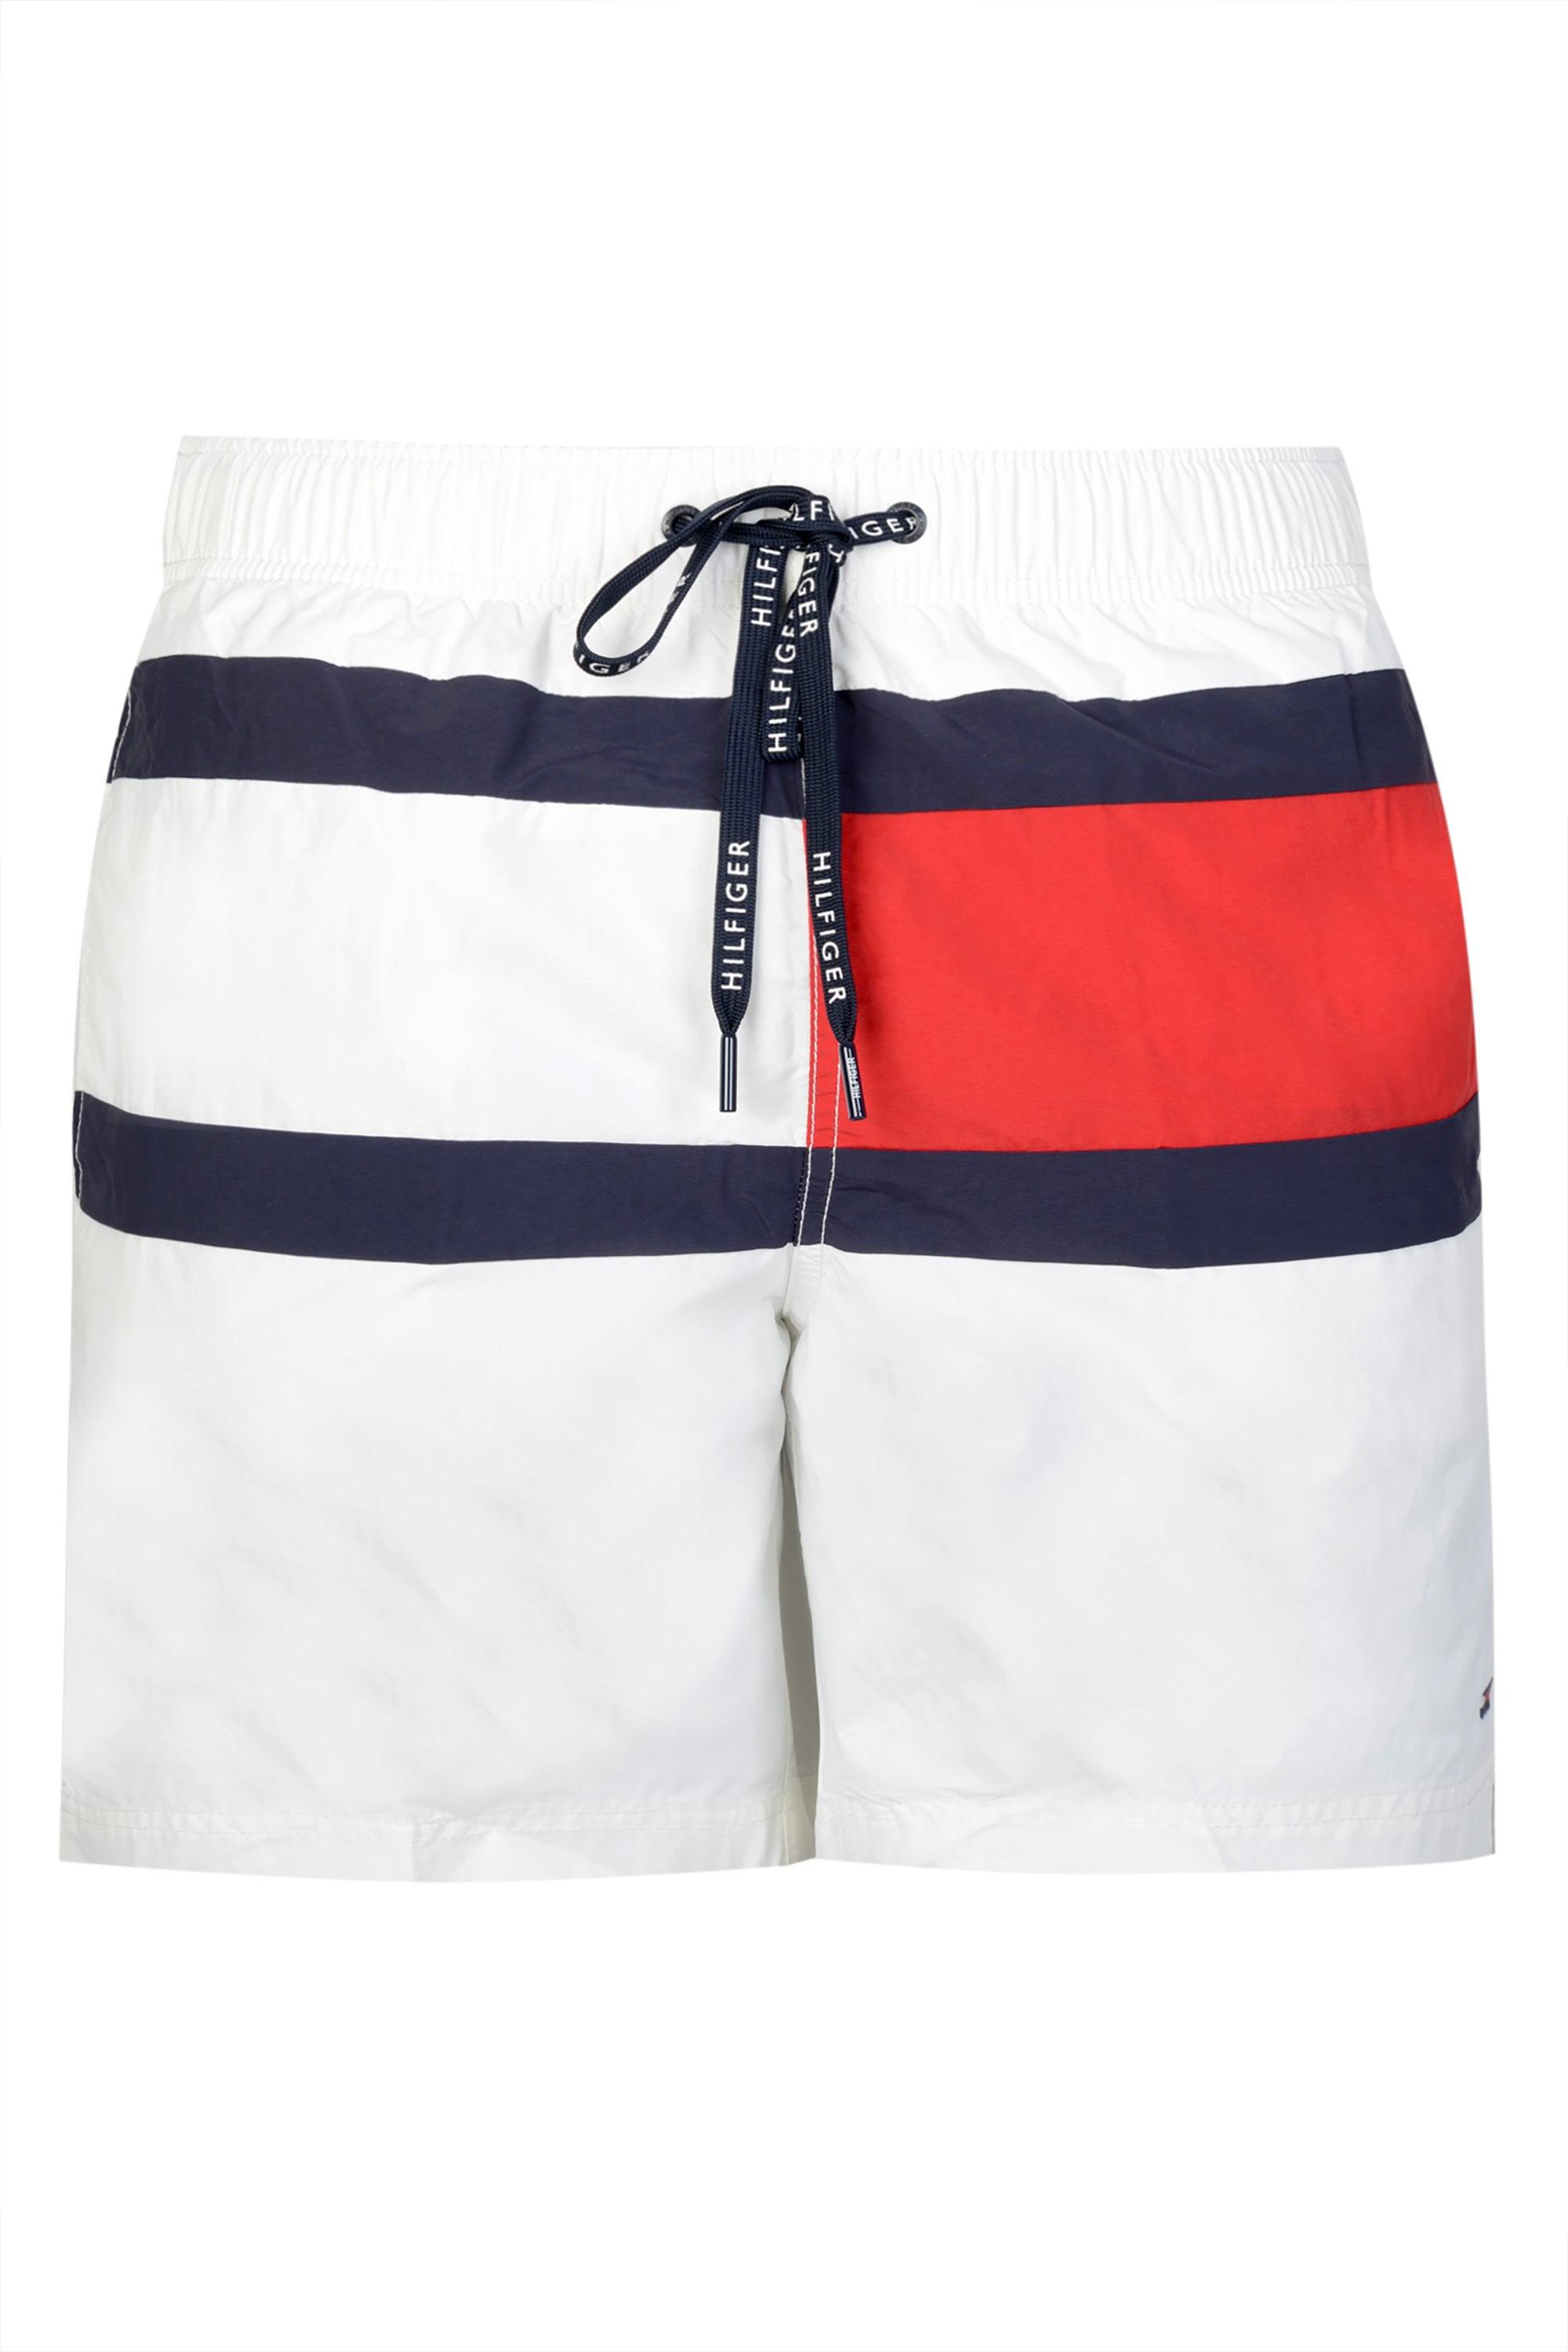 7c0f779e93ff93 Tommy Hilfiger - White Colour-blocked Drawstring Swim Shorts for Men - Lyst